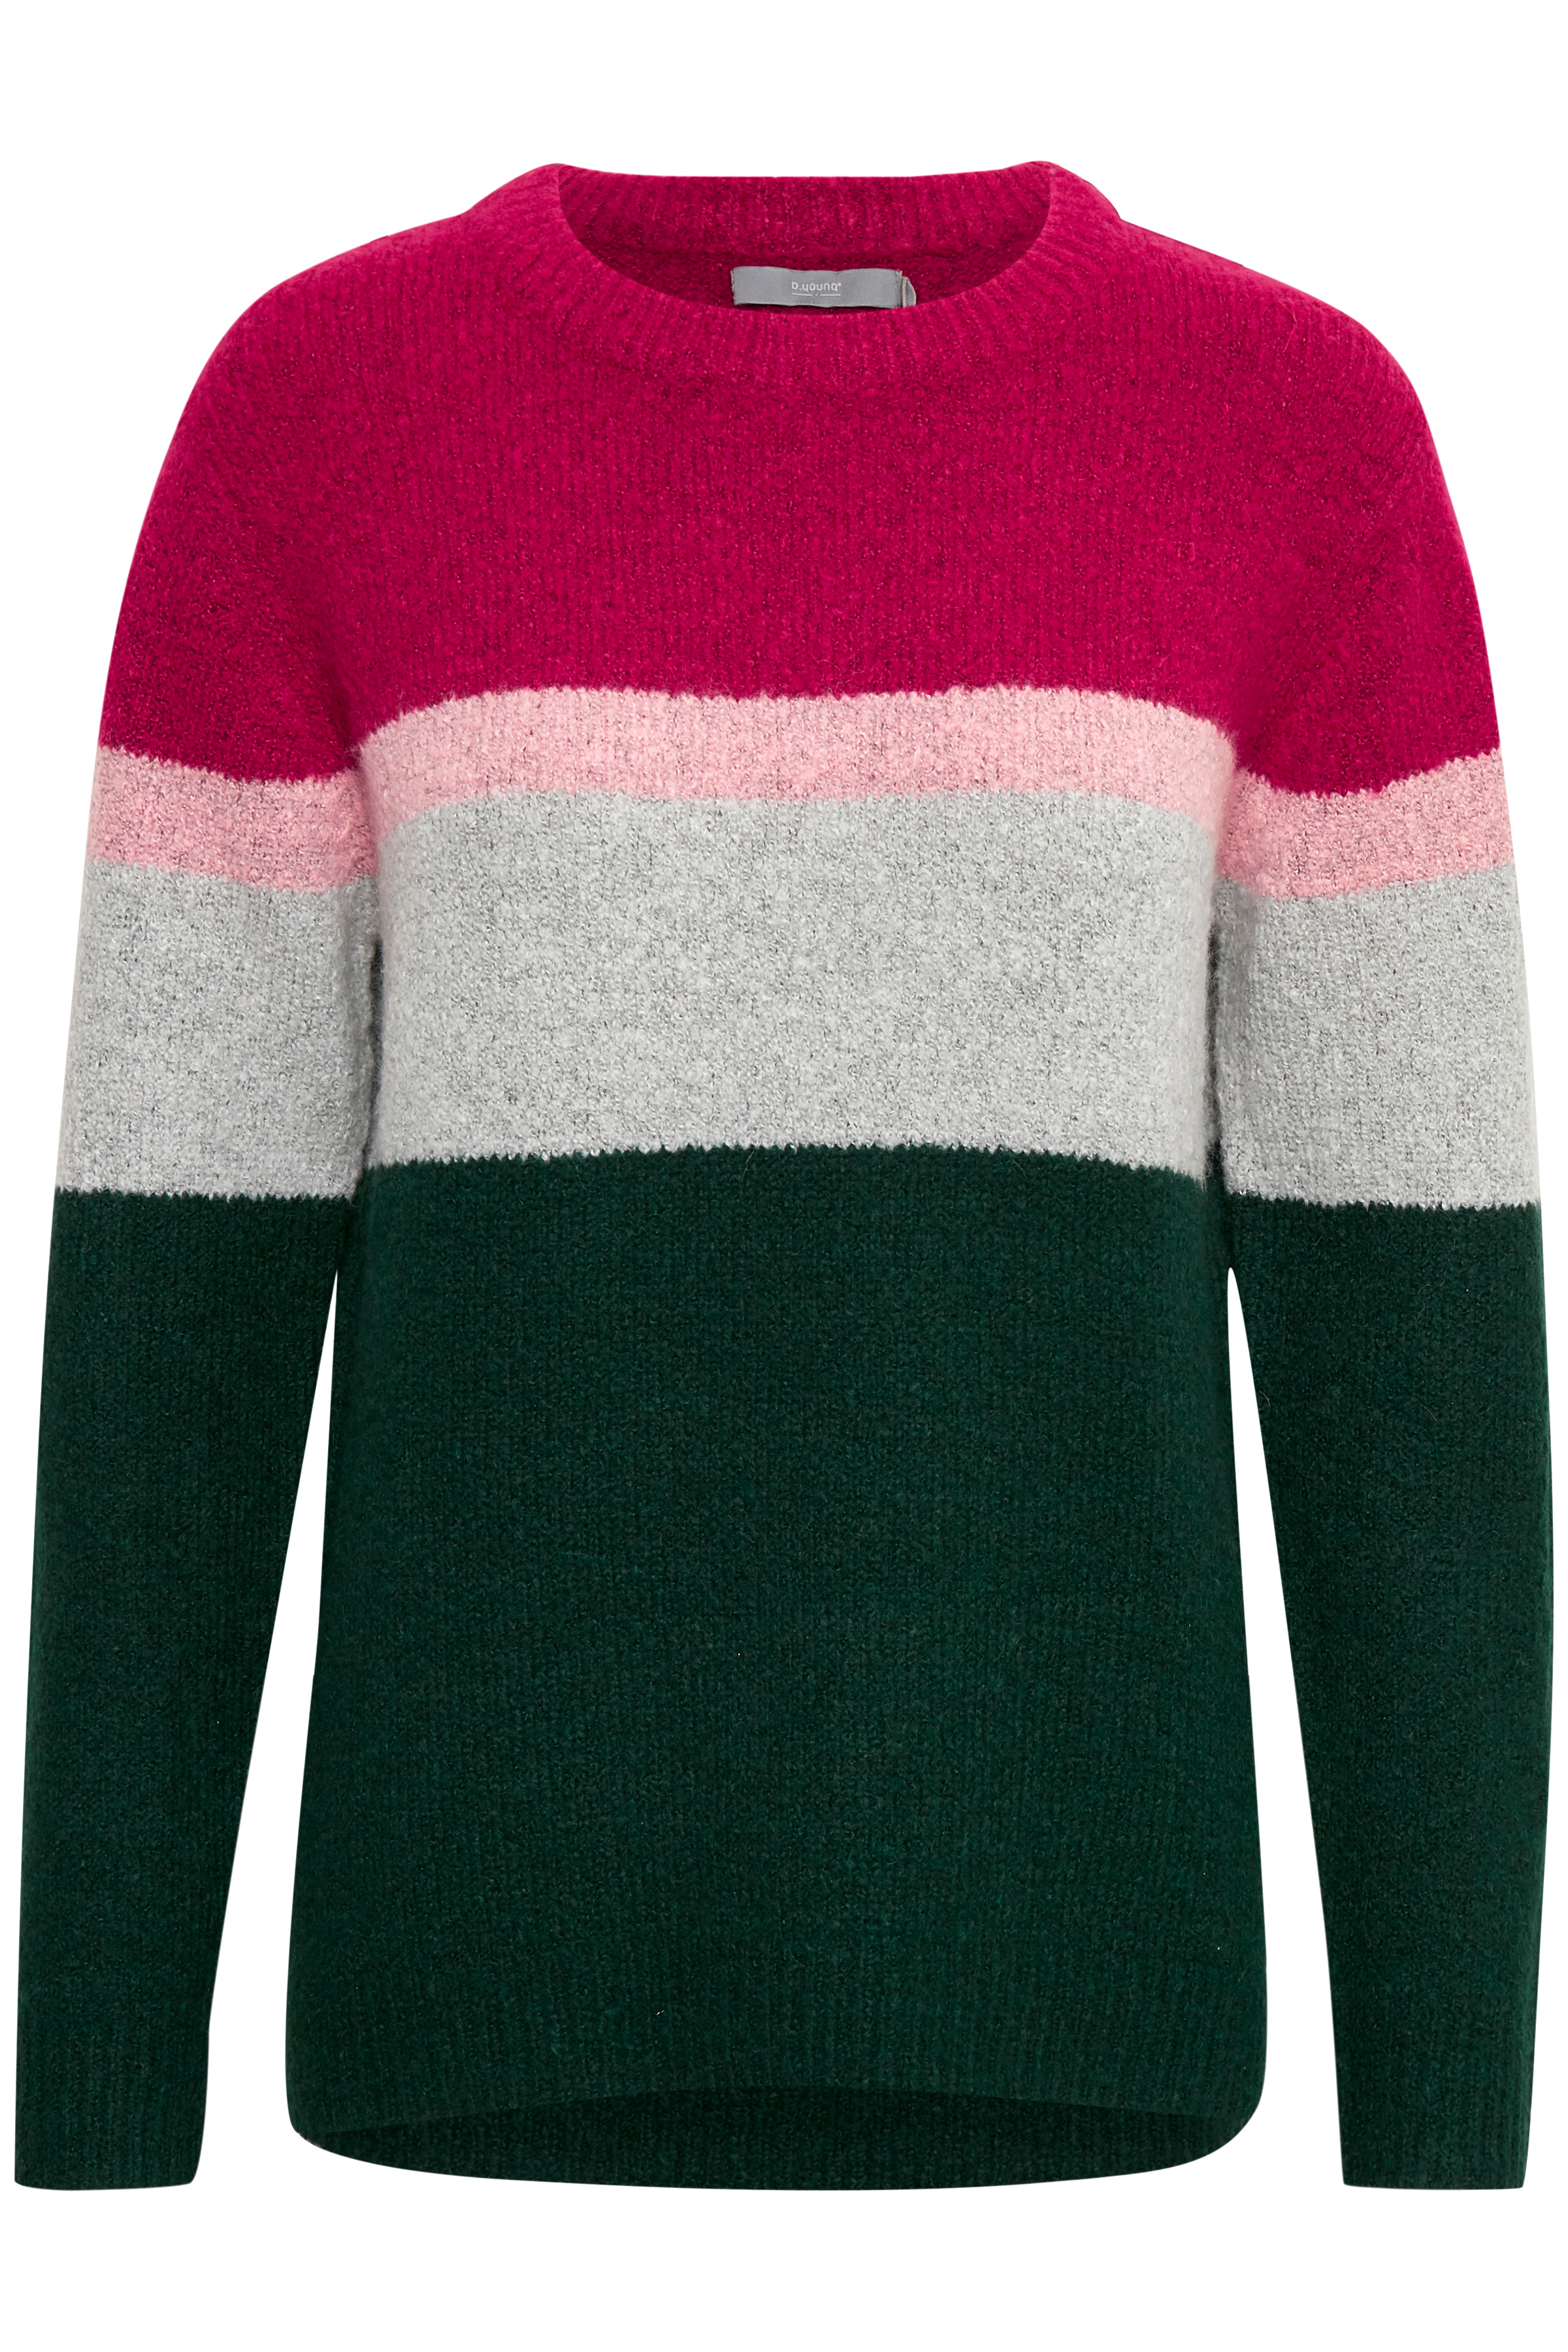 MajesticGreen mel.combi Knitted pullover from b.young – Buy MajesticGreen mel.combi Knitted pullover from size XS-XXL here